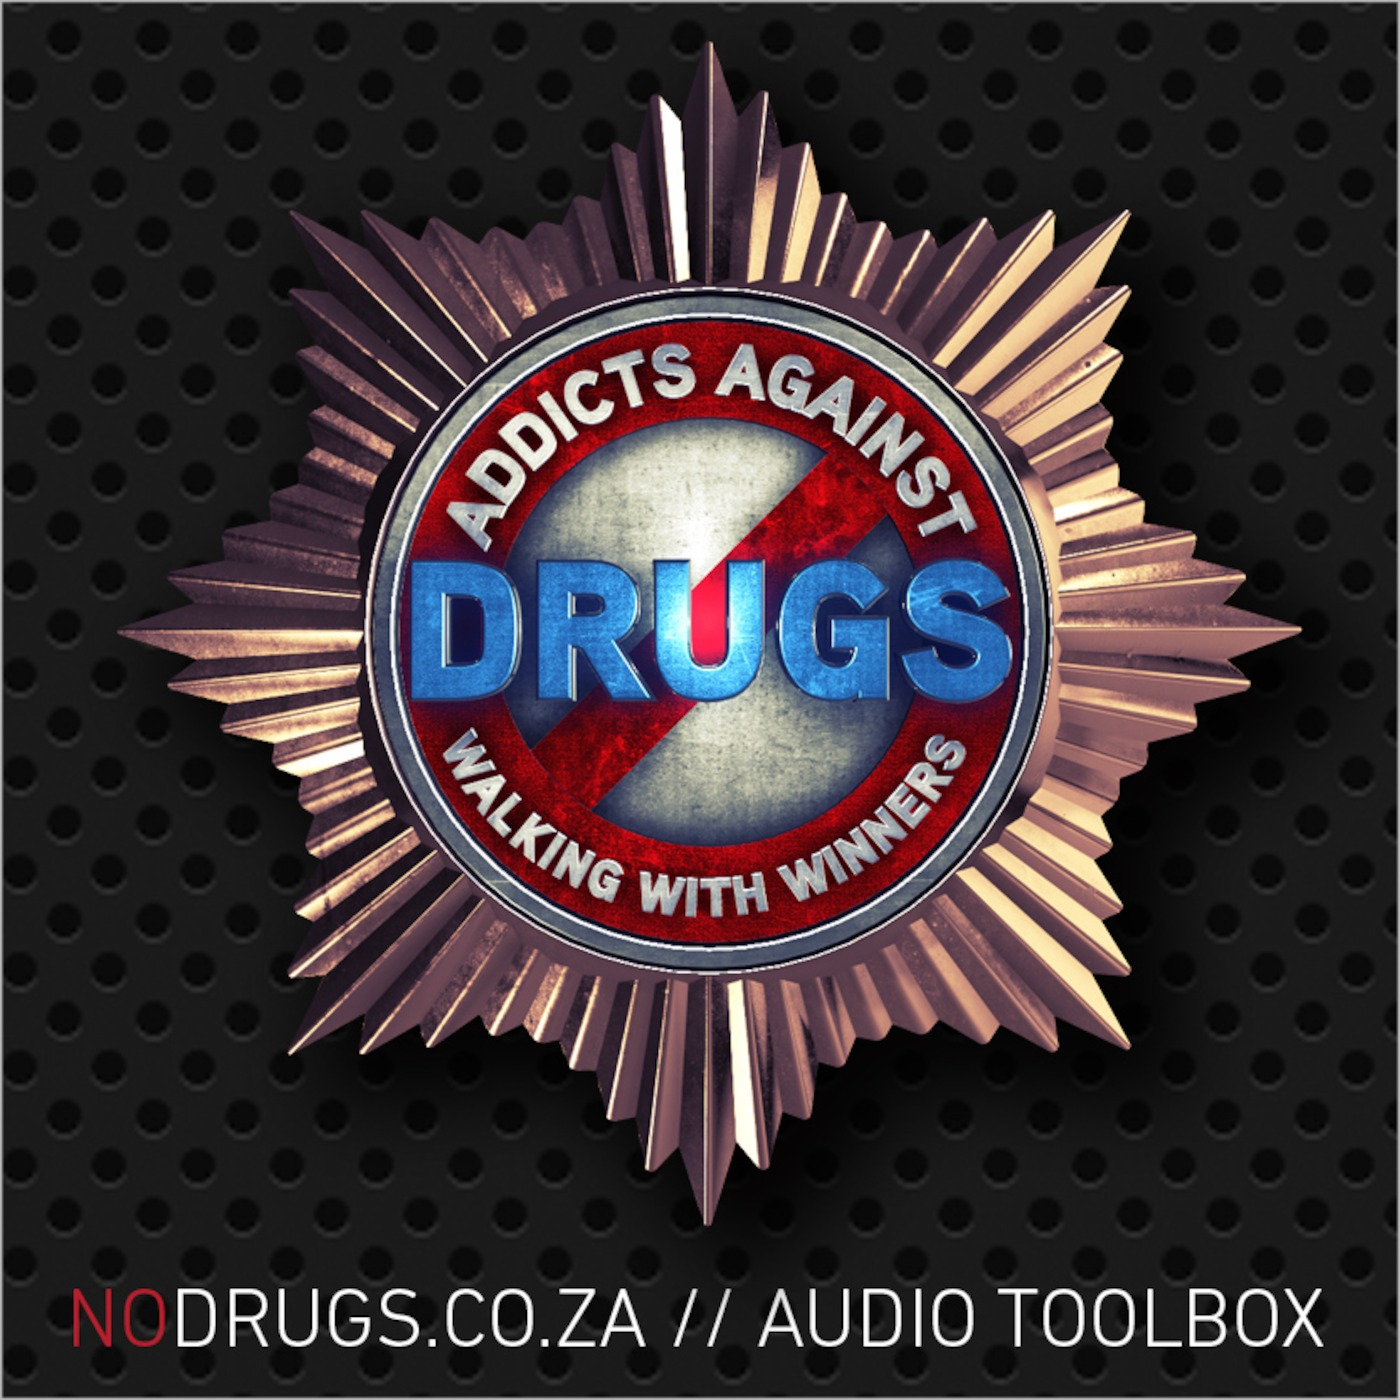 ADDICTS AGAINST DRUGS